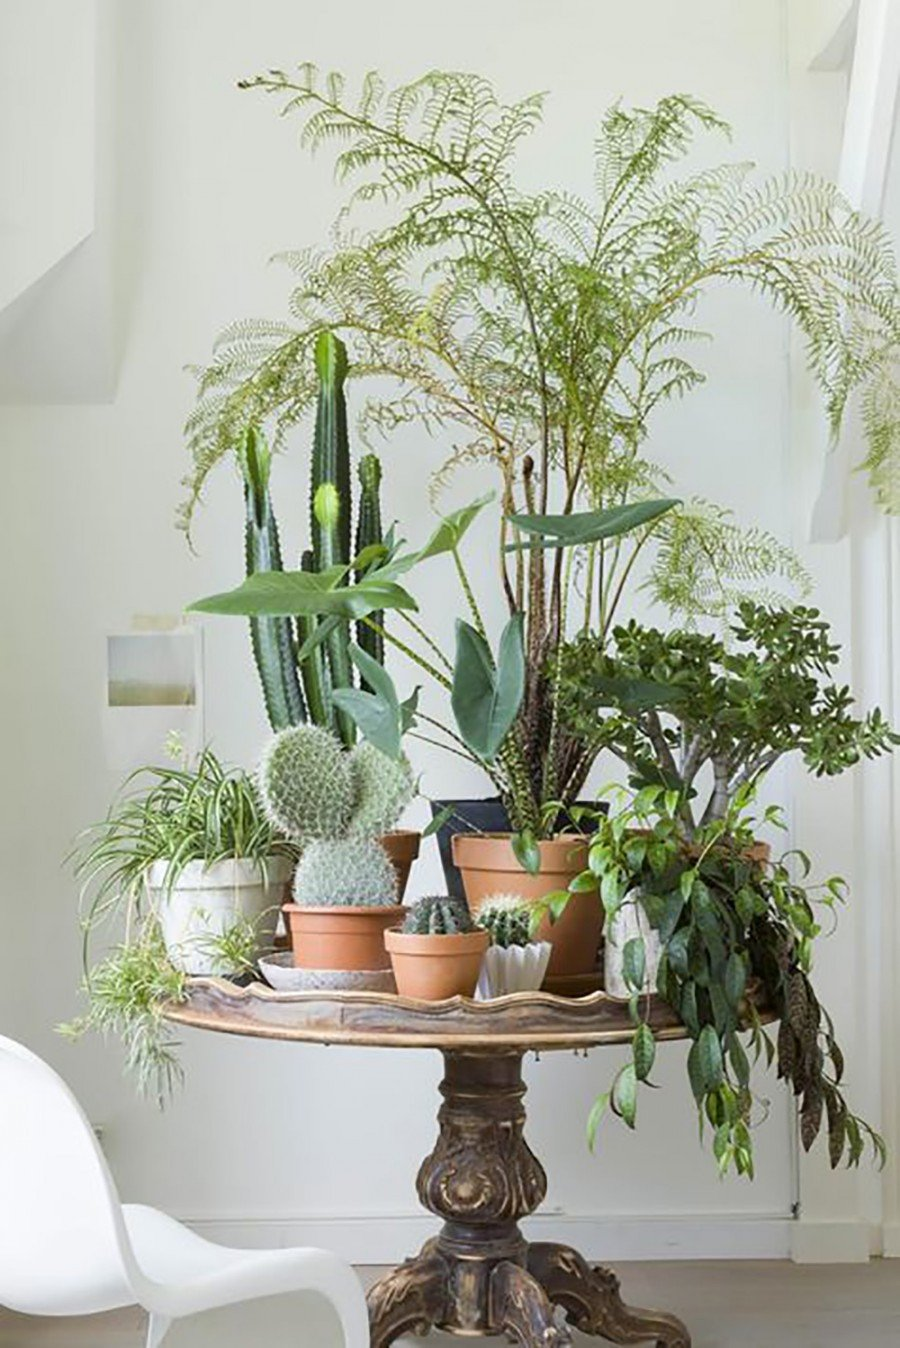 Using Plants In Home Decor Best Of 10 Happy Living Room Ideas with Plants